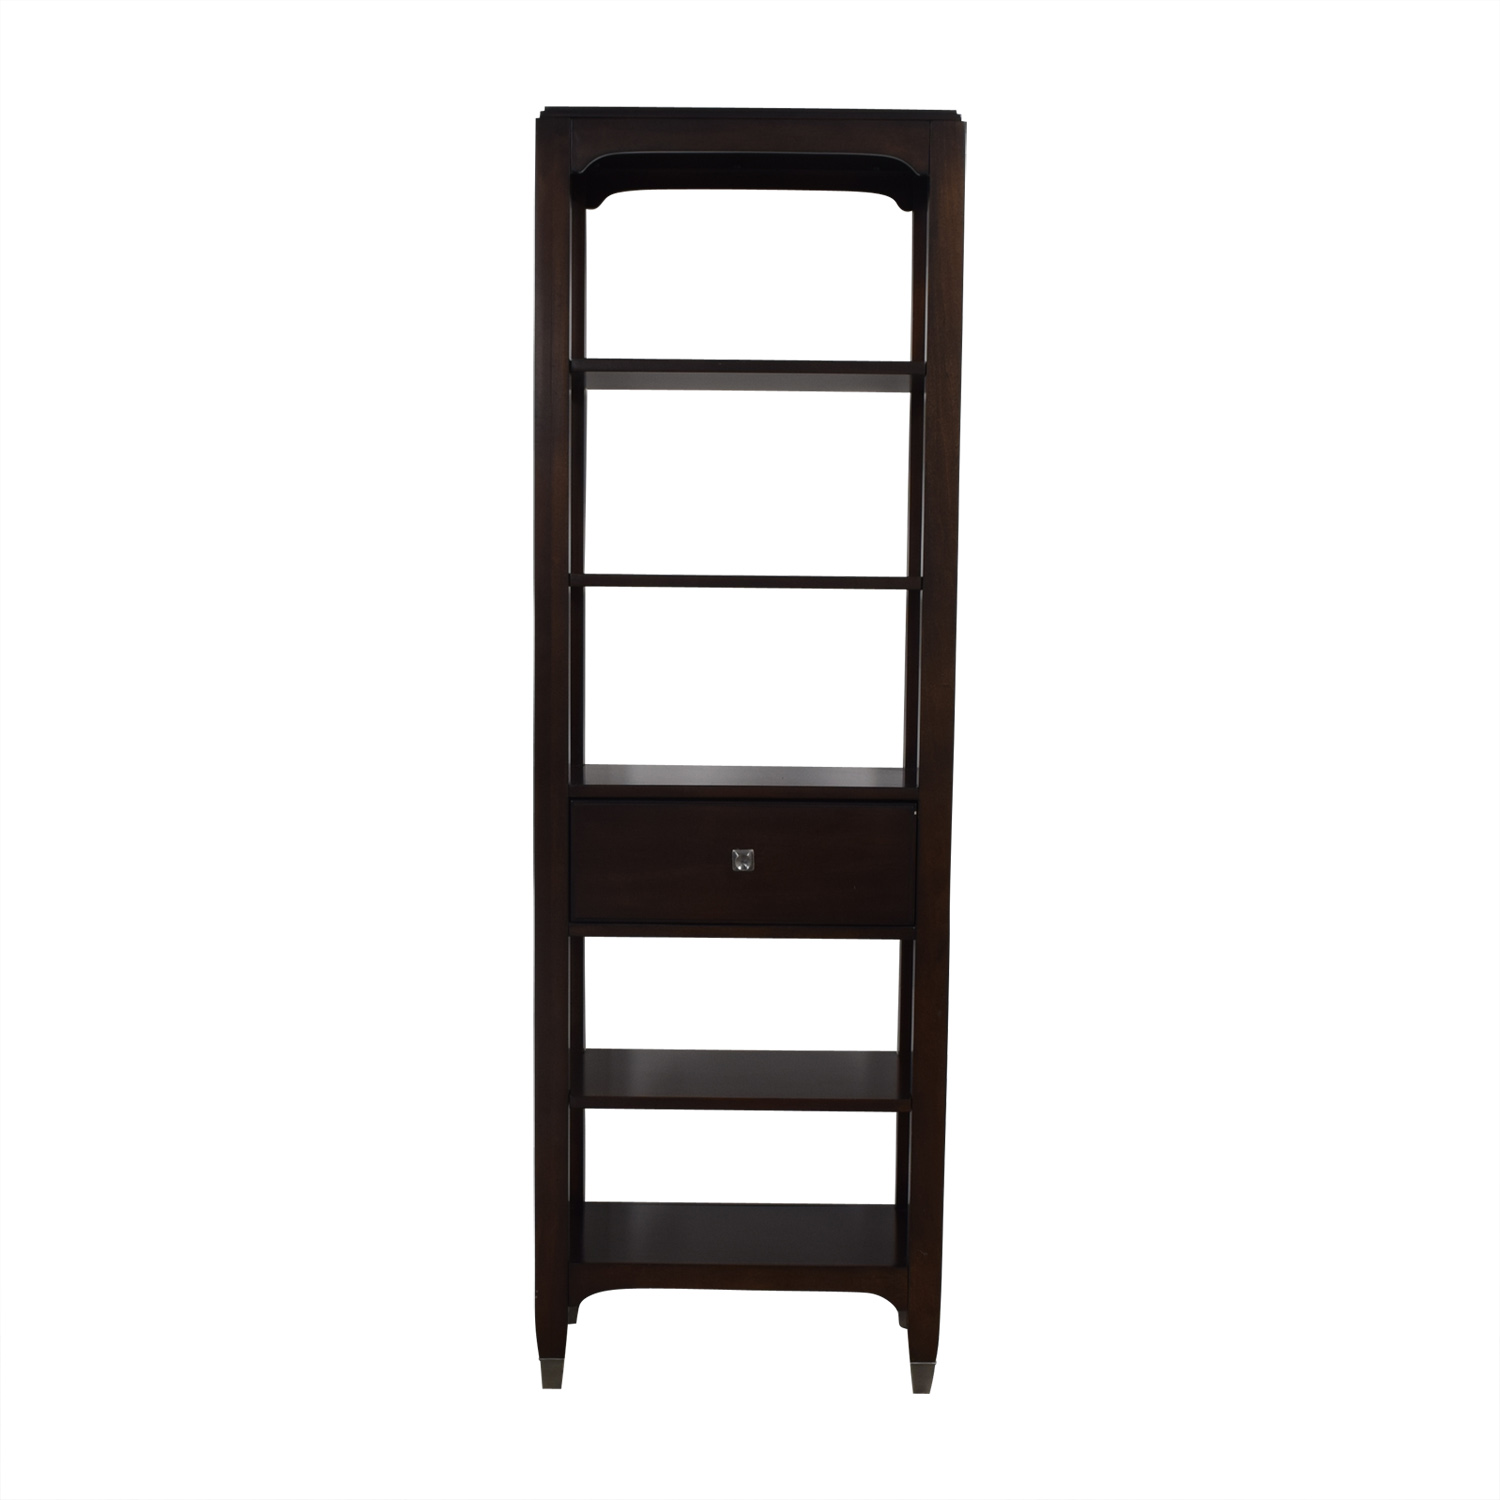 Bassett Furniture Bassett Furniture Tower Shelf with Drawer coupon